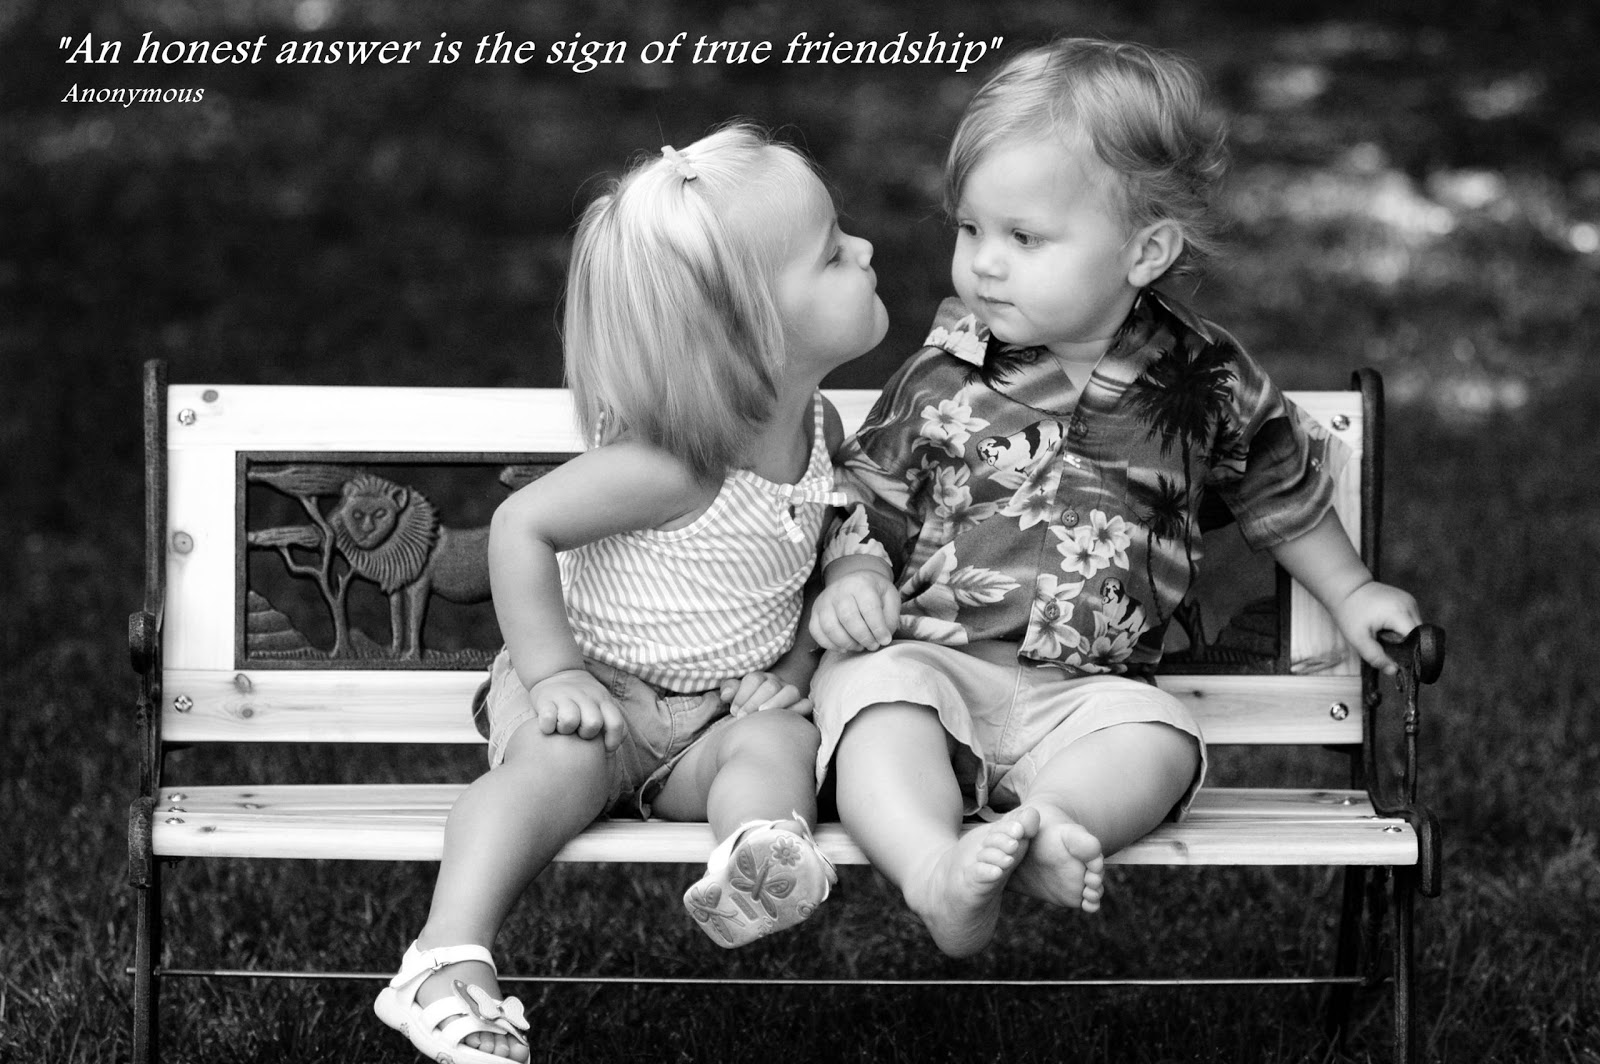 Cute Love Quotes For Kids: Cute Friendship Quote Of The Day (June 19,2011)